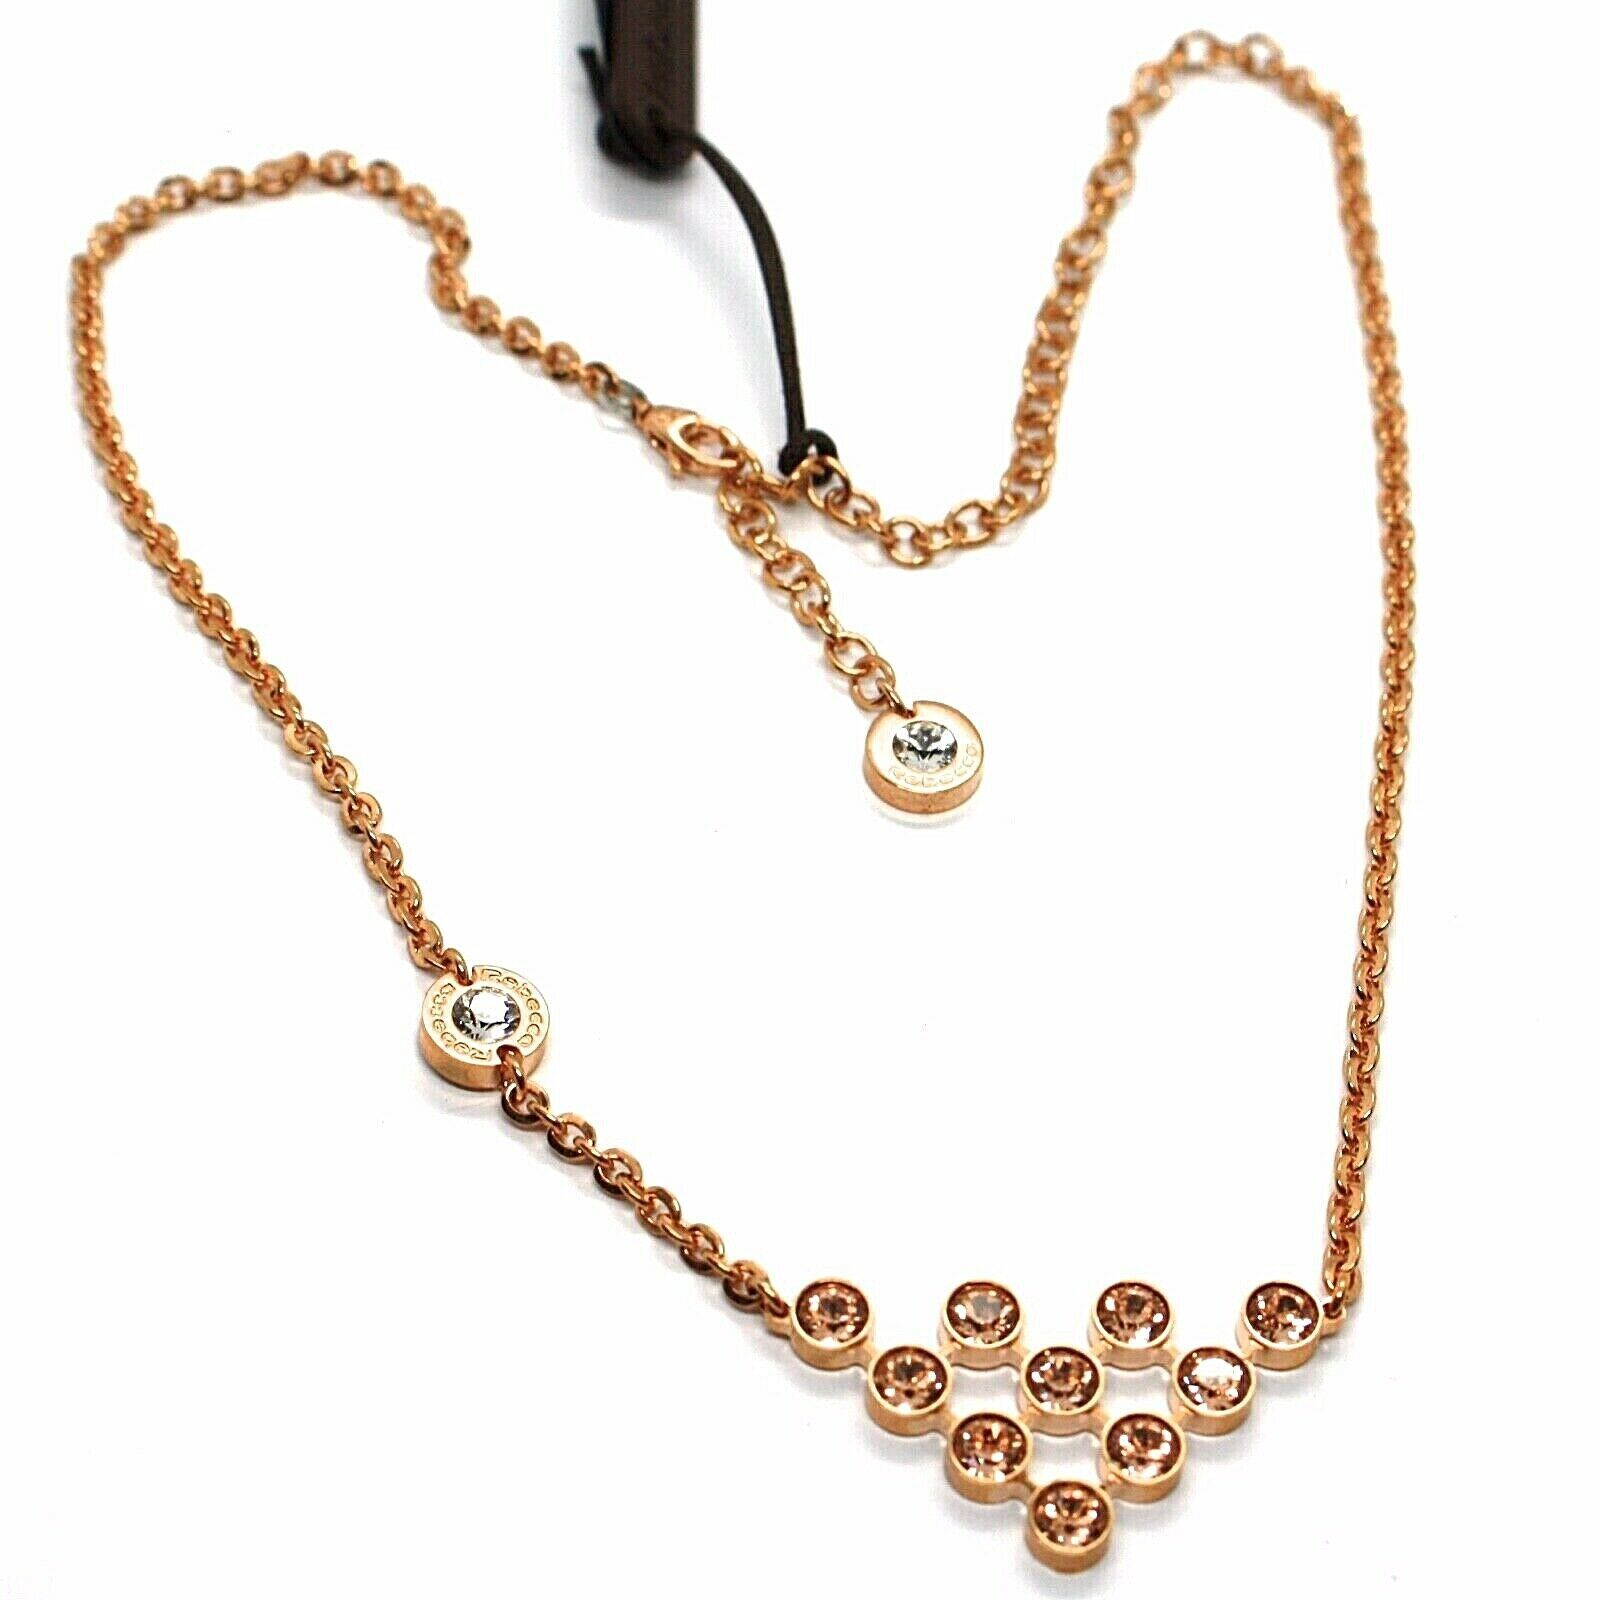 REBECCA BRONZE ROSE NECKLACE, TRIANGULAR CENTRAL WITH ORANGE CRYSTALS, BPBKRP05